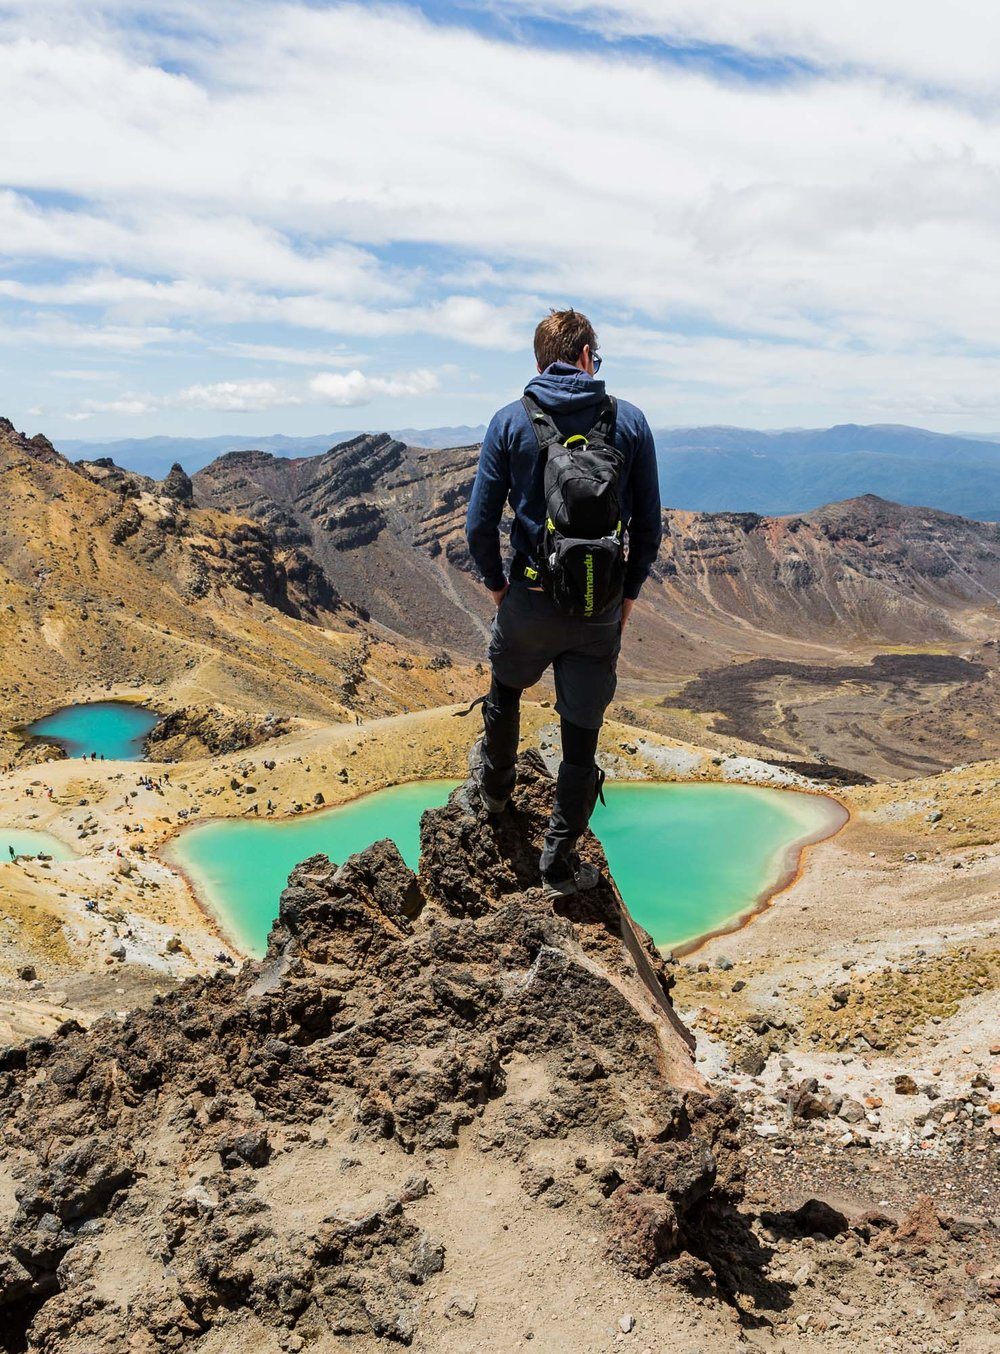 2017_01_19_ben_kepka_cultured_kiwi_Tongariro_Alpine_Crossing-18.jpg